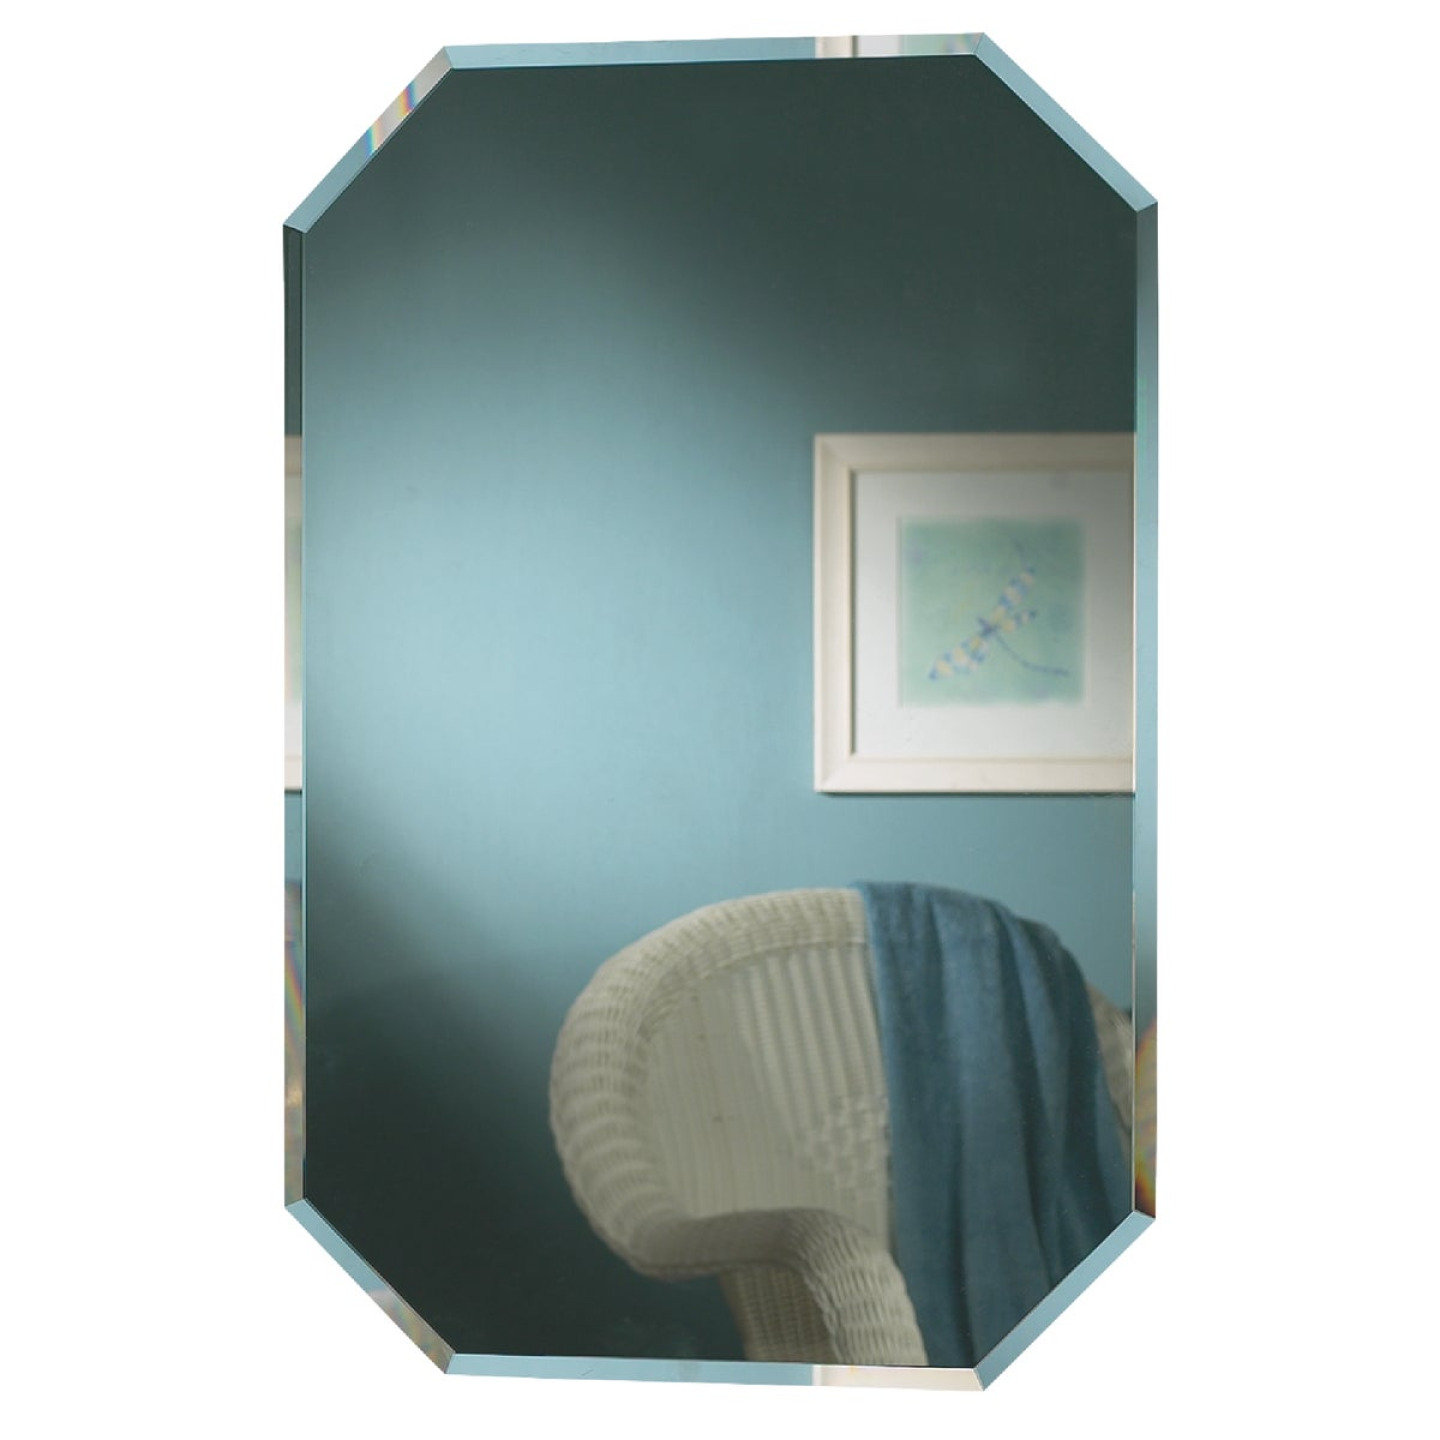 Zenith Frameless Beveled 16 In. W x 24 In. H x 4-1/2 In. D Single Mirror Surface/Recess Mount Octagon Medicine Cabinet Image 1